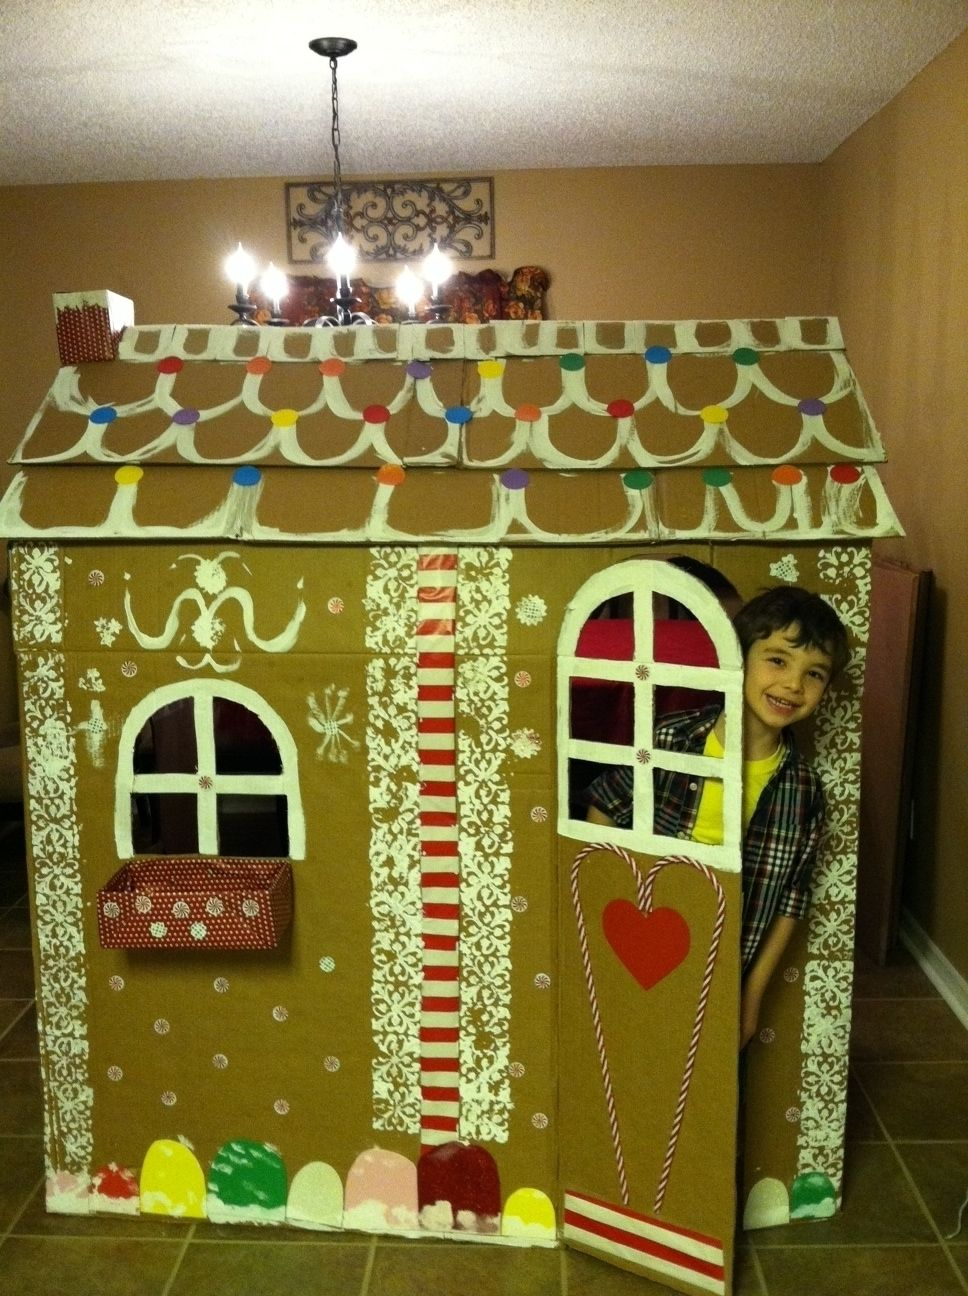 Giant diy gingerbread house just fab kids craft projects giant diy gingerbread house just fab kids craft projects playhouses and gingerbread solutioingenieria Image collections